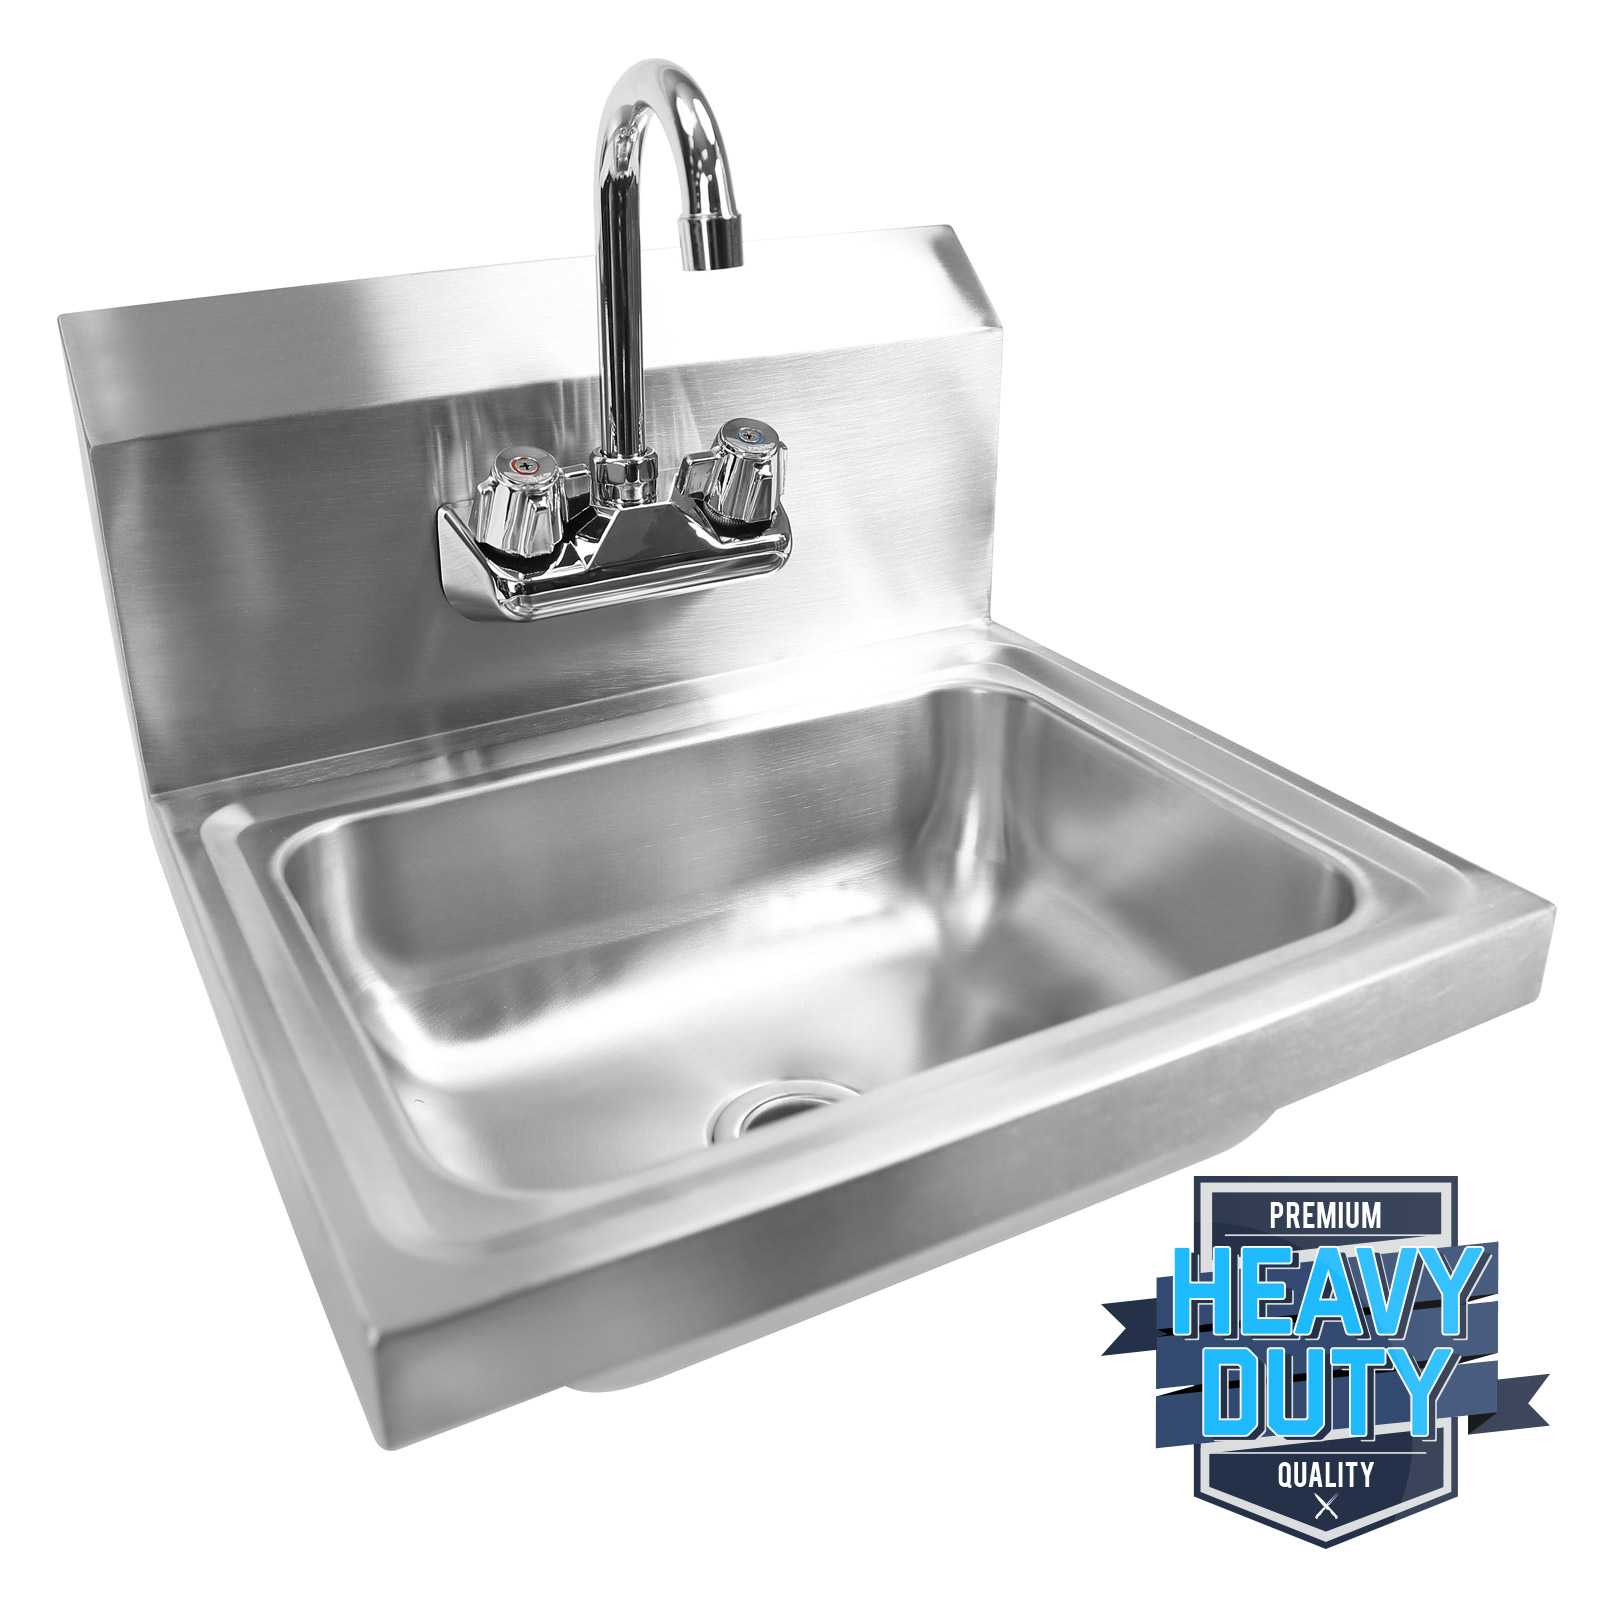 Commercial Hand Sink : Commercial Stainless Steel Hand Wash Washing Wall Mount Sink Kitchen ...